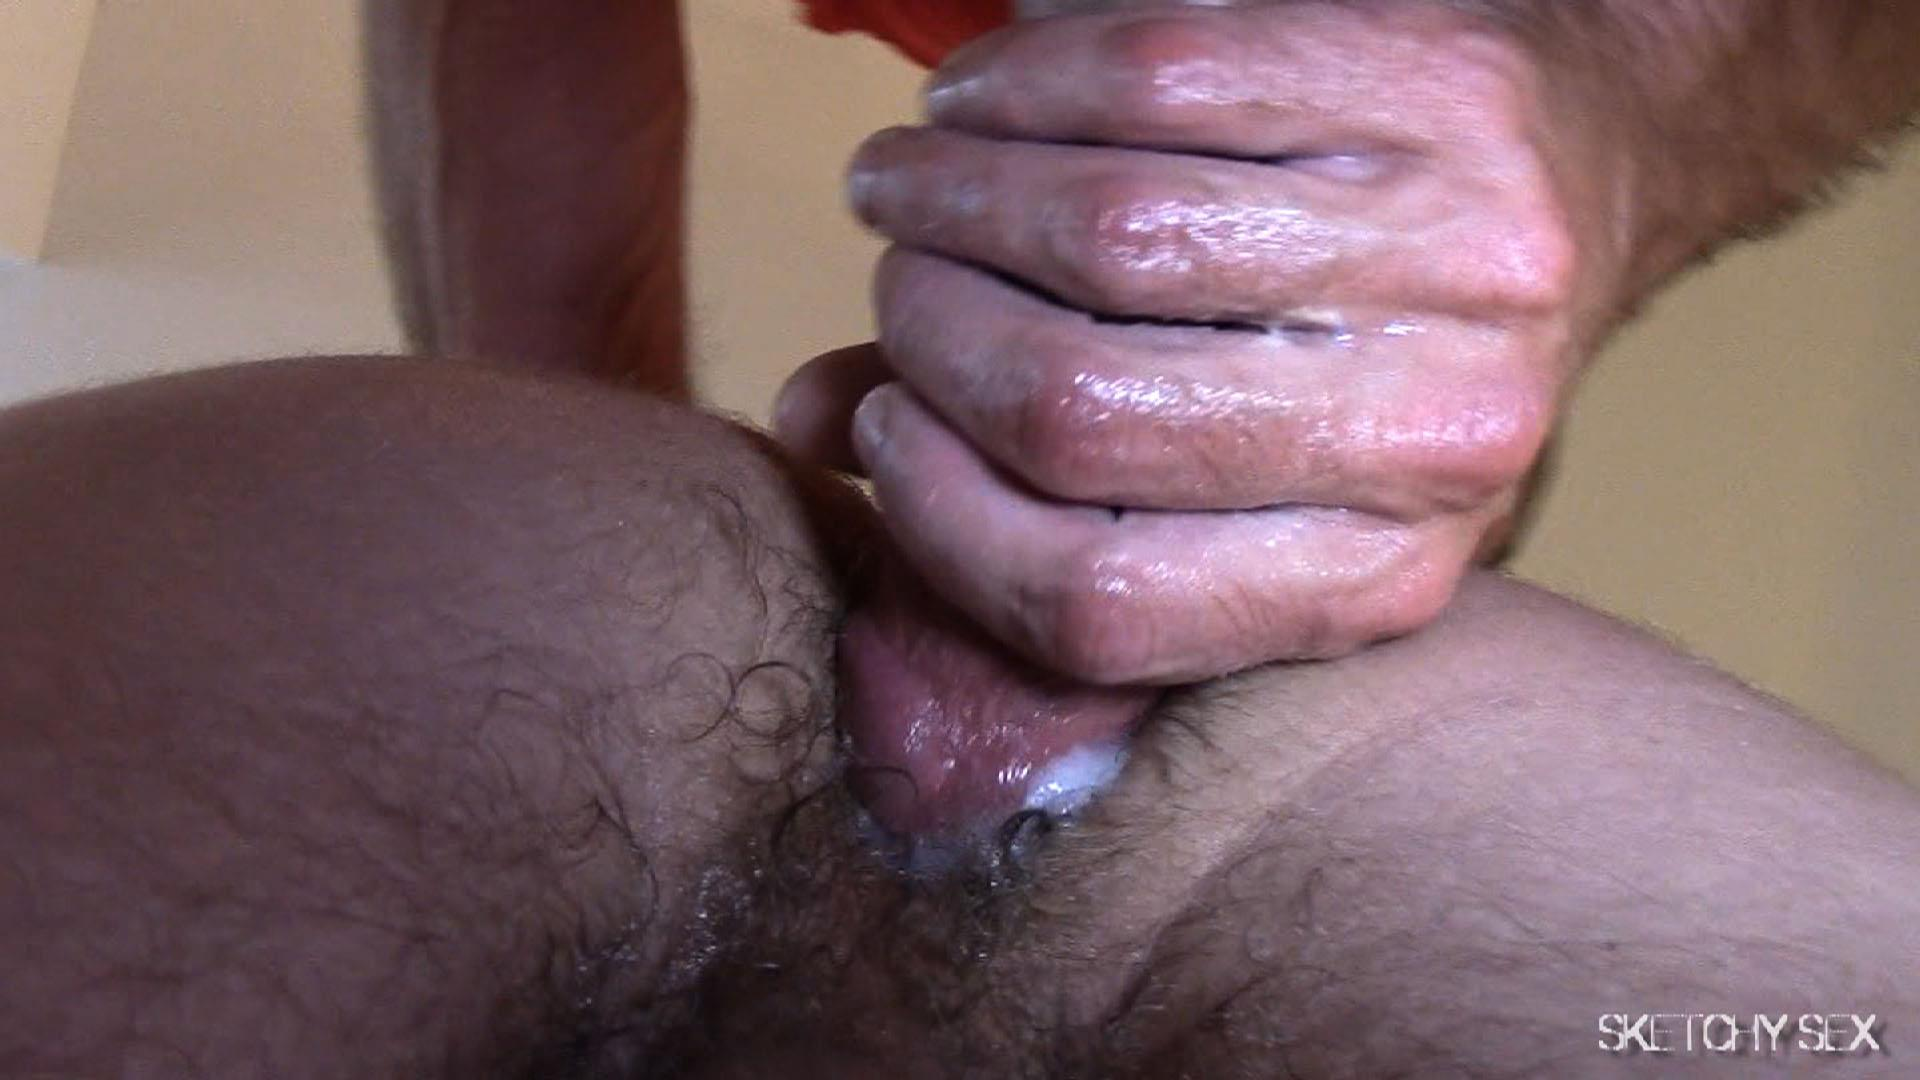 Sketchy Sex Nate Getting Fucked Bareback By A 10 Inch Craigslist Cock Amateur Gay Porn 10 Taking A 10